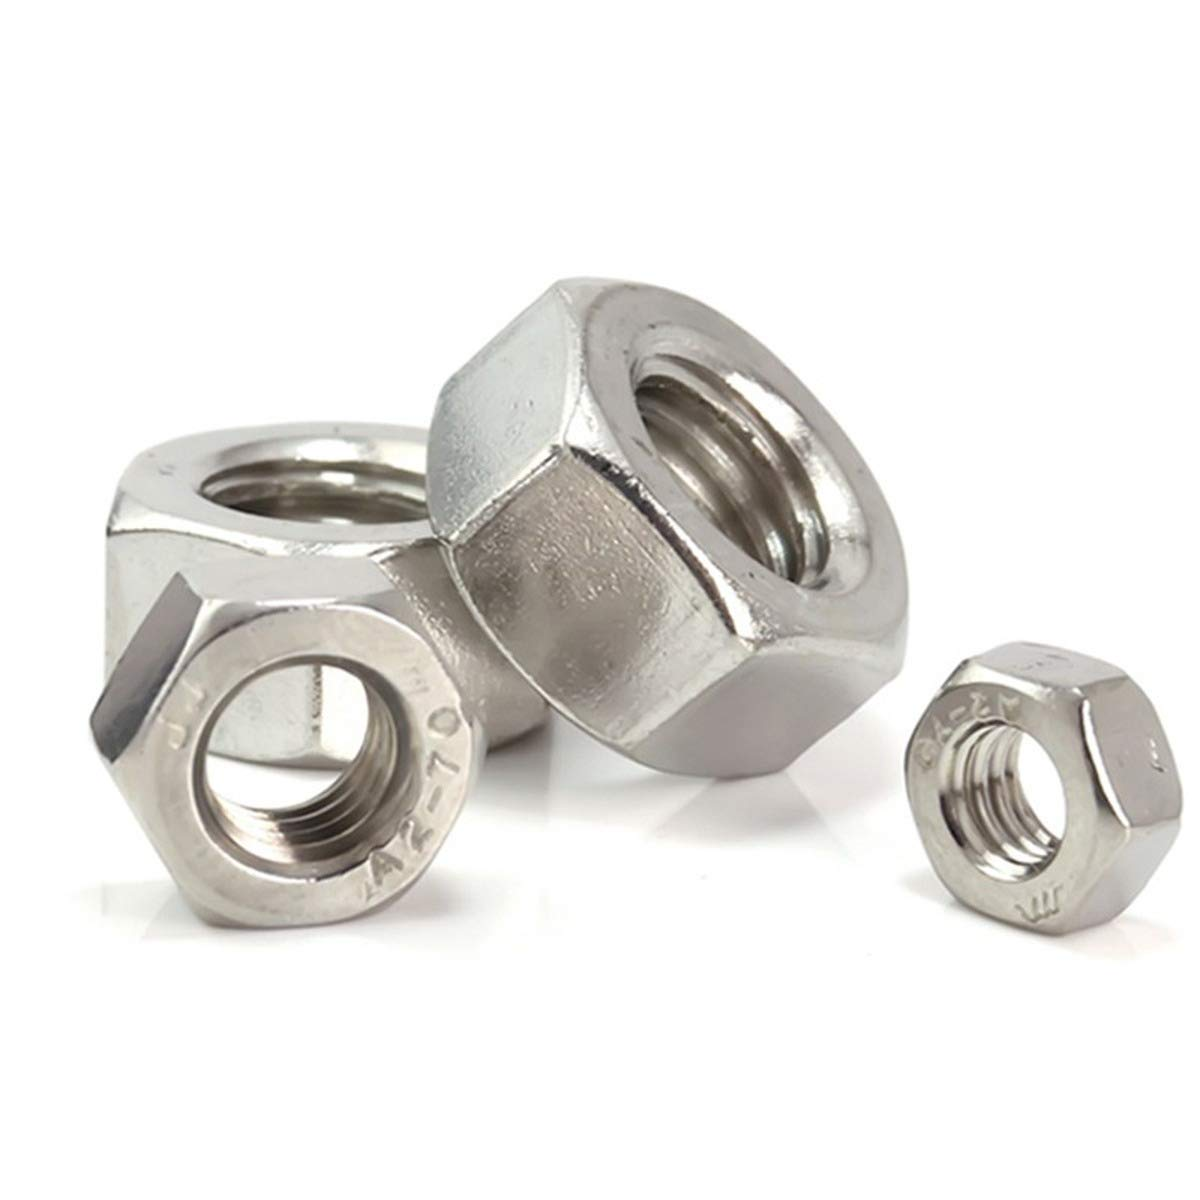 M3 200Pcs Luchang M2 M3 M4 304 Stainless Steel Hex Nut Hexagon Nuts Metric Thread Suit for Screws Bolts